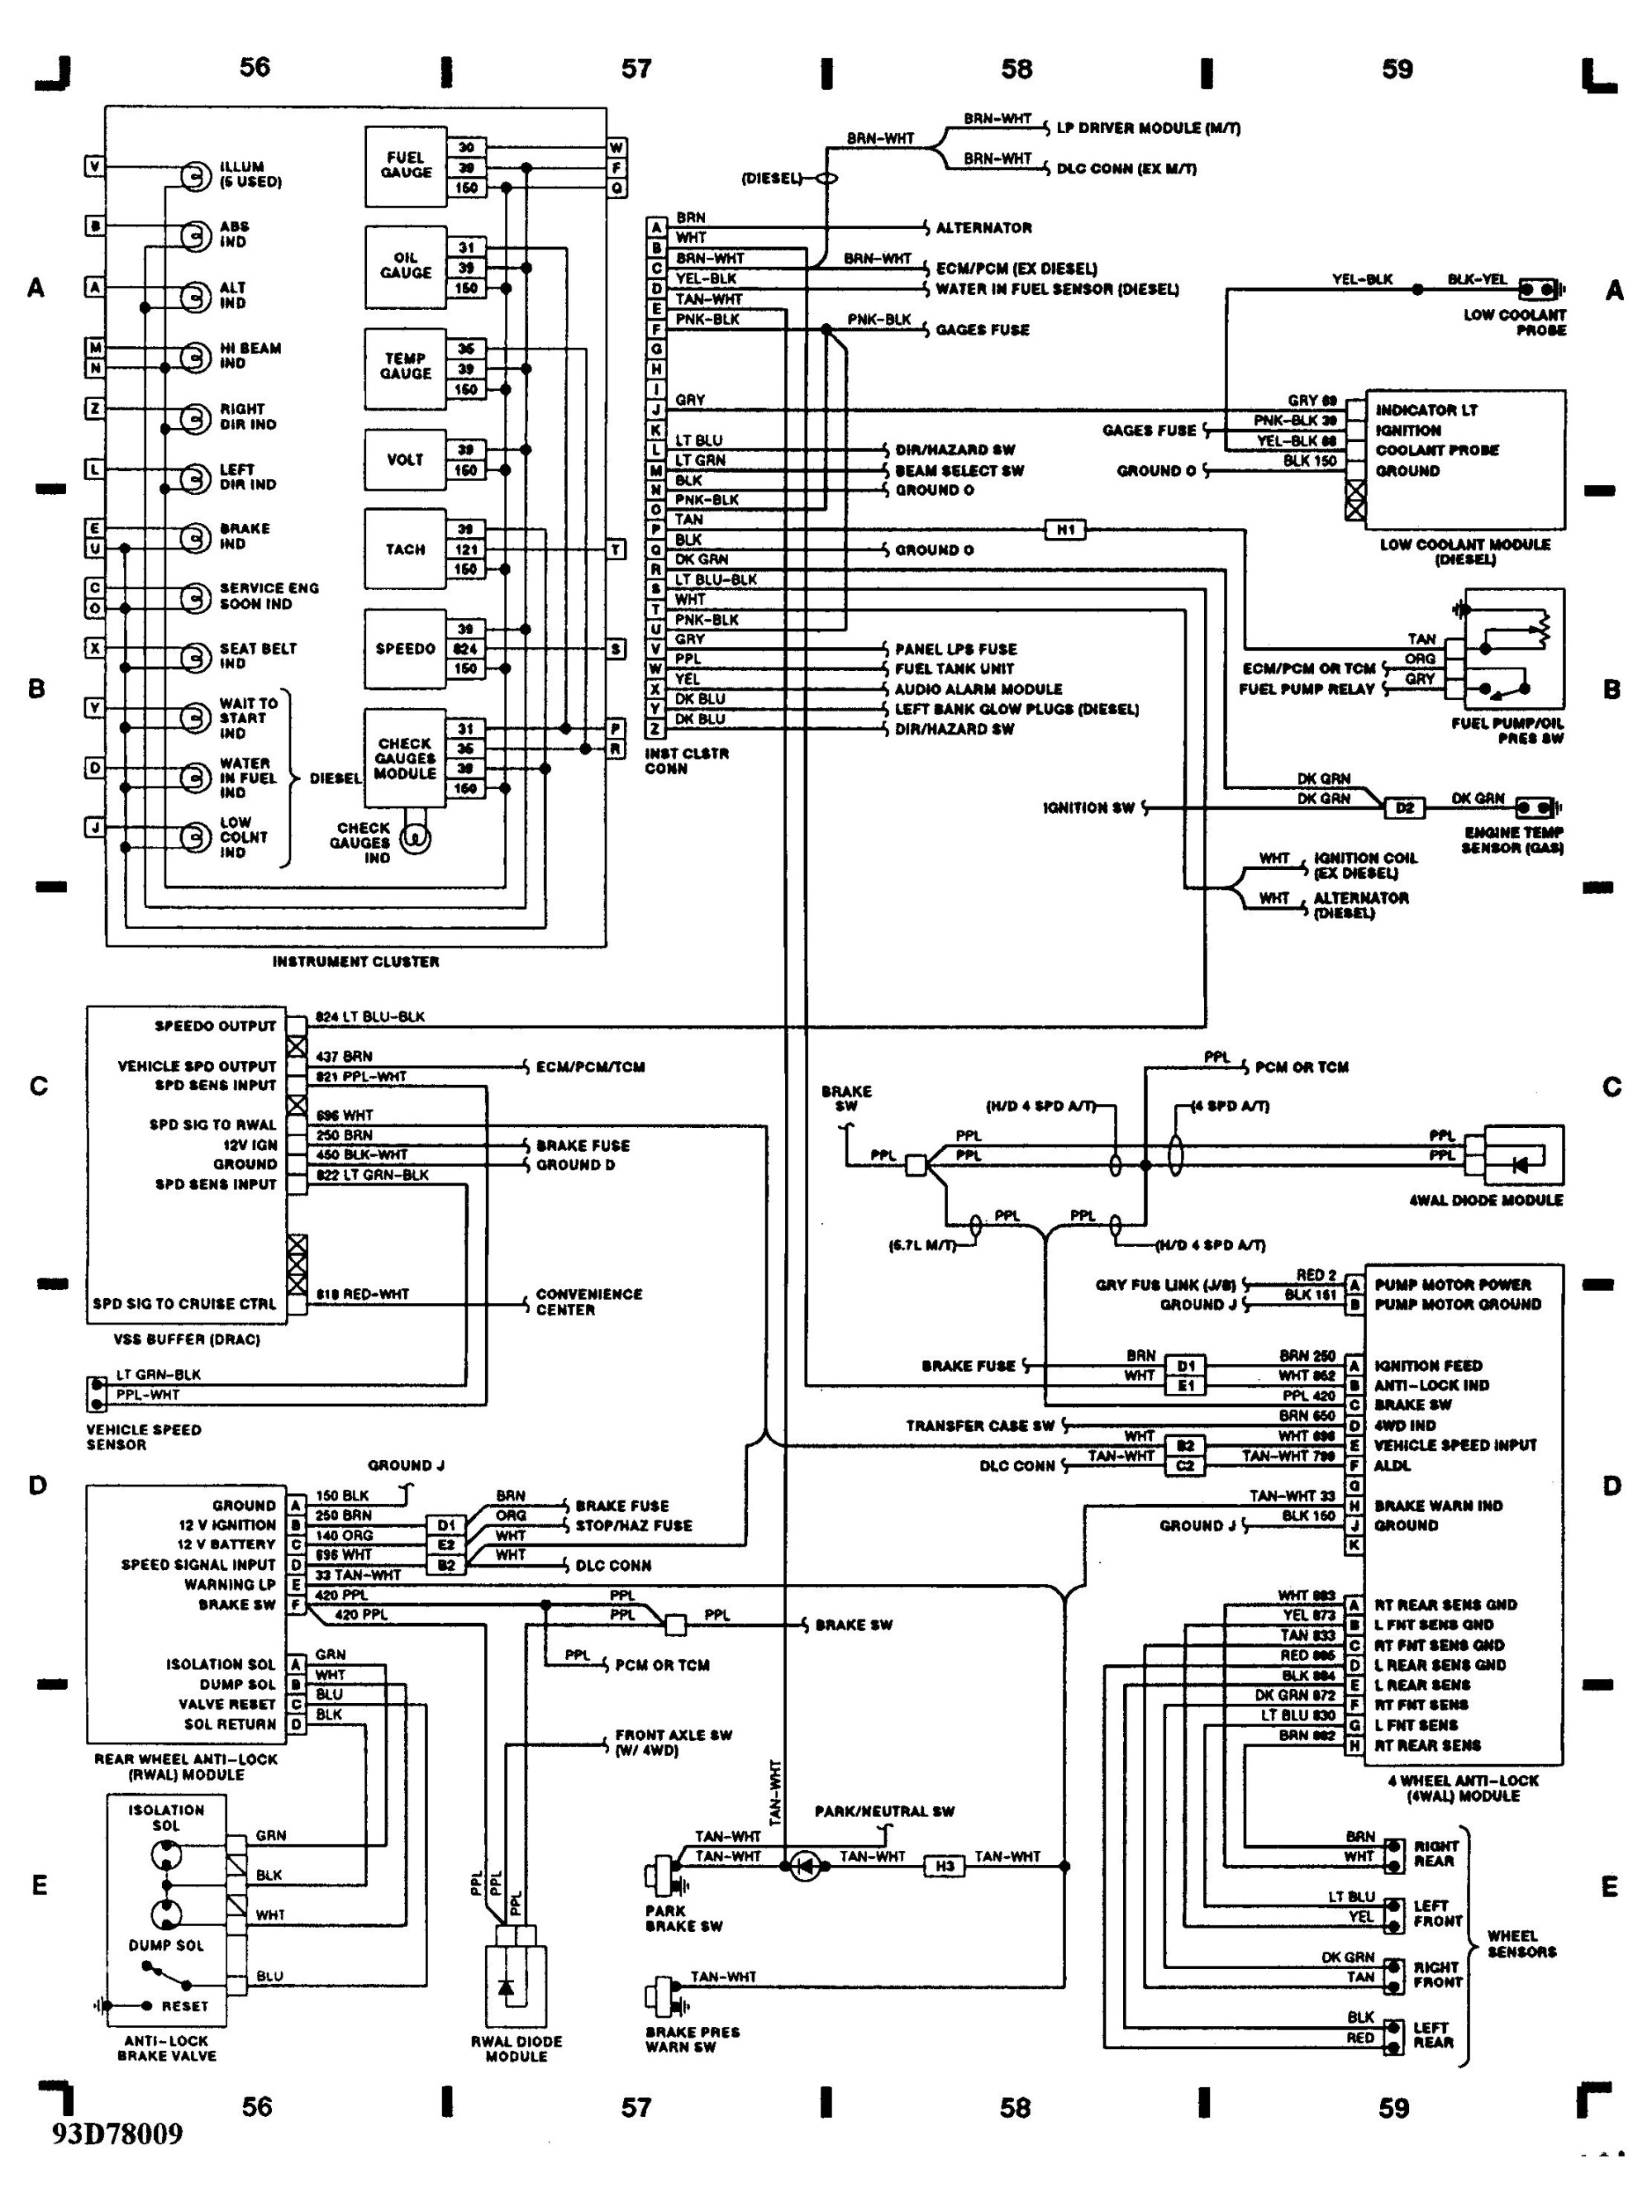 hight resolution of 2002 5 4 wiring harness diagram wiring diagram completed5 3 wiring harness diagram wiring diagram 2002